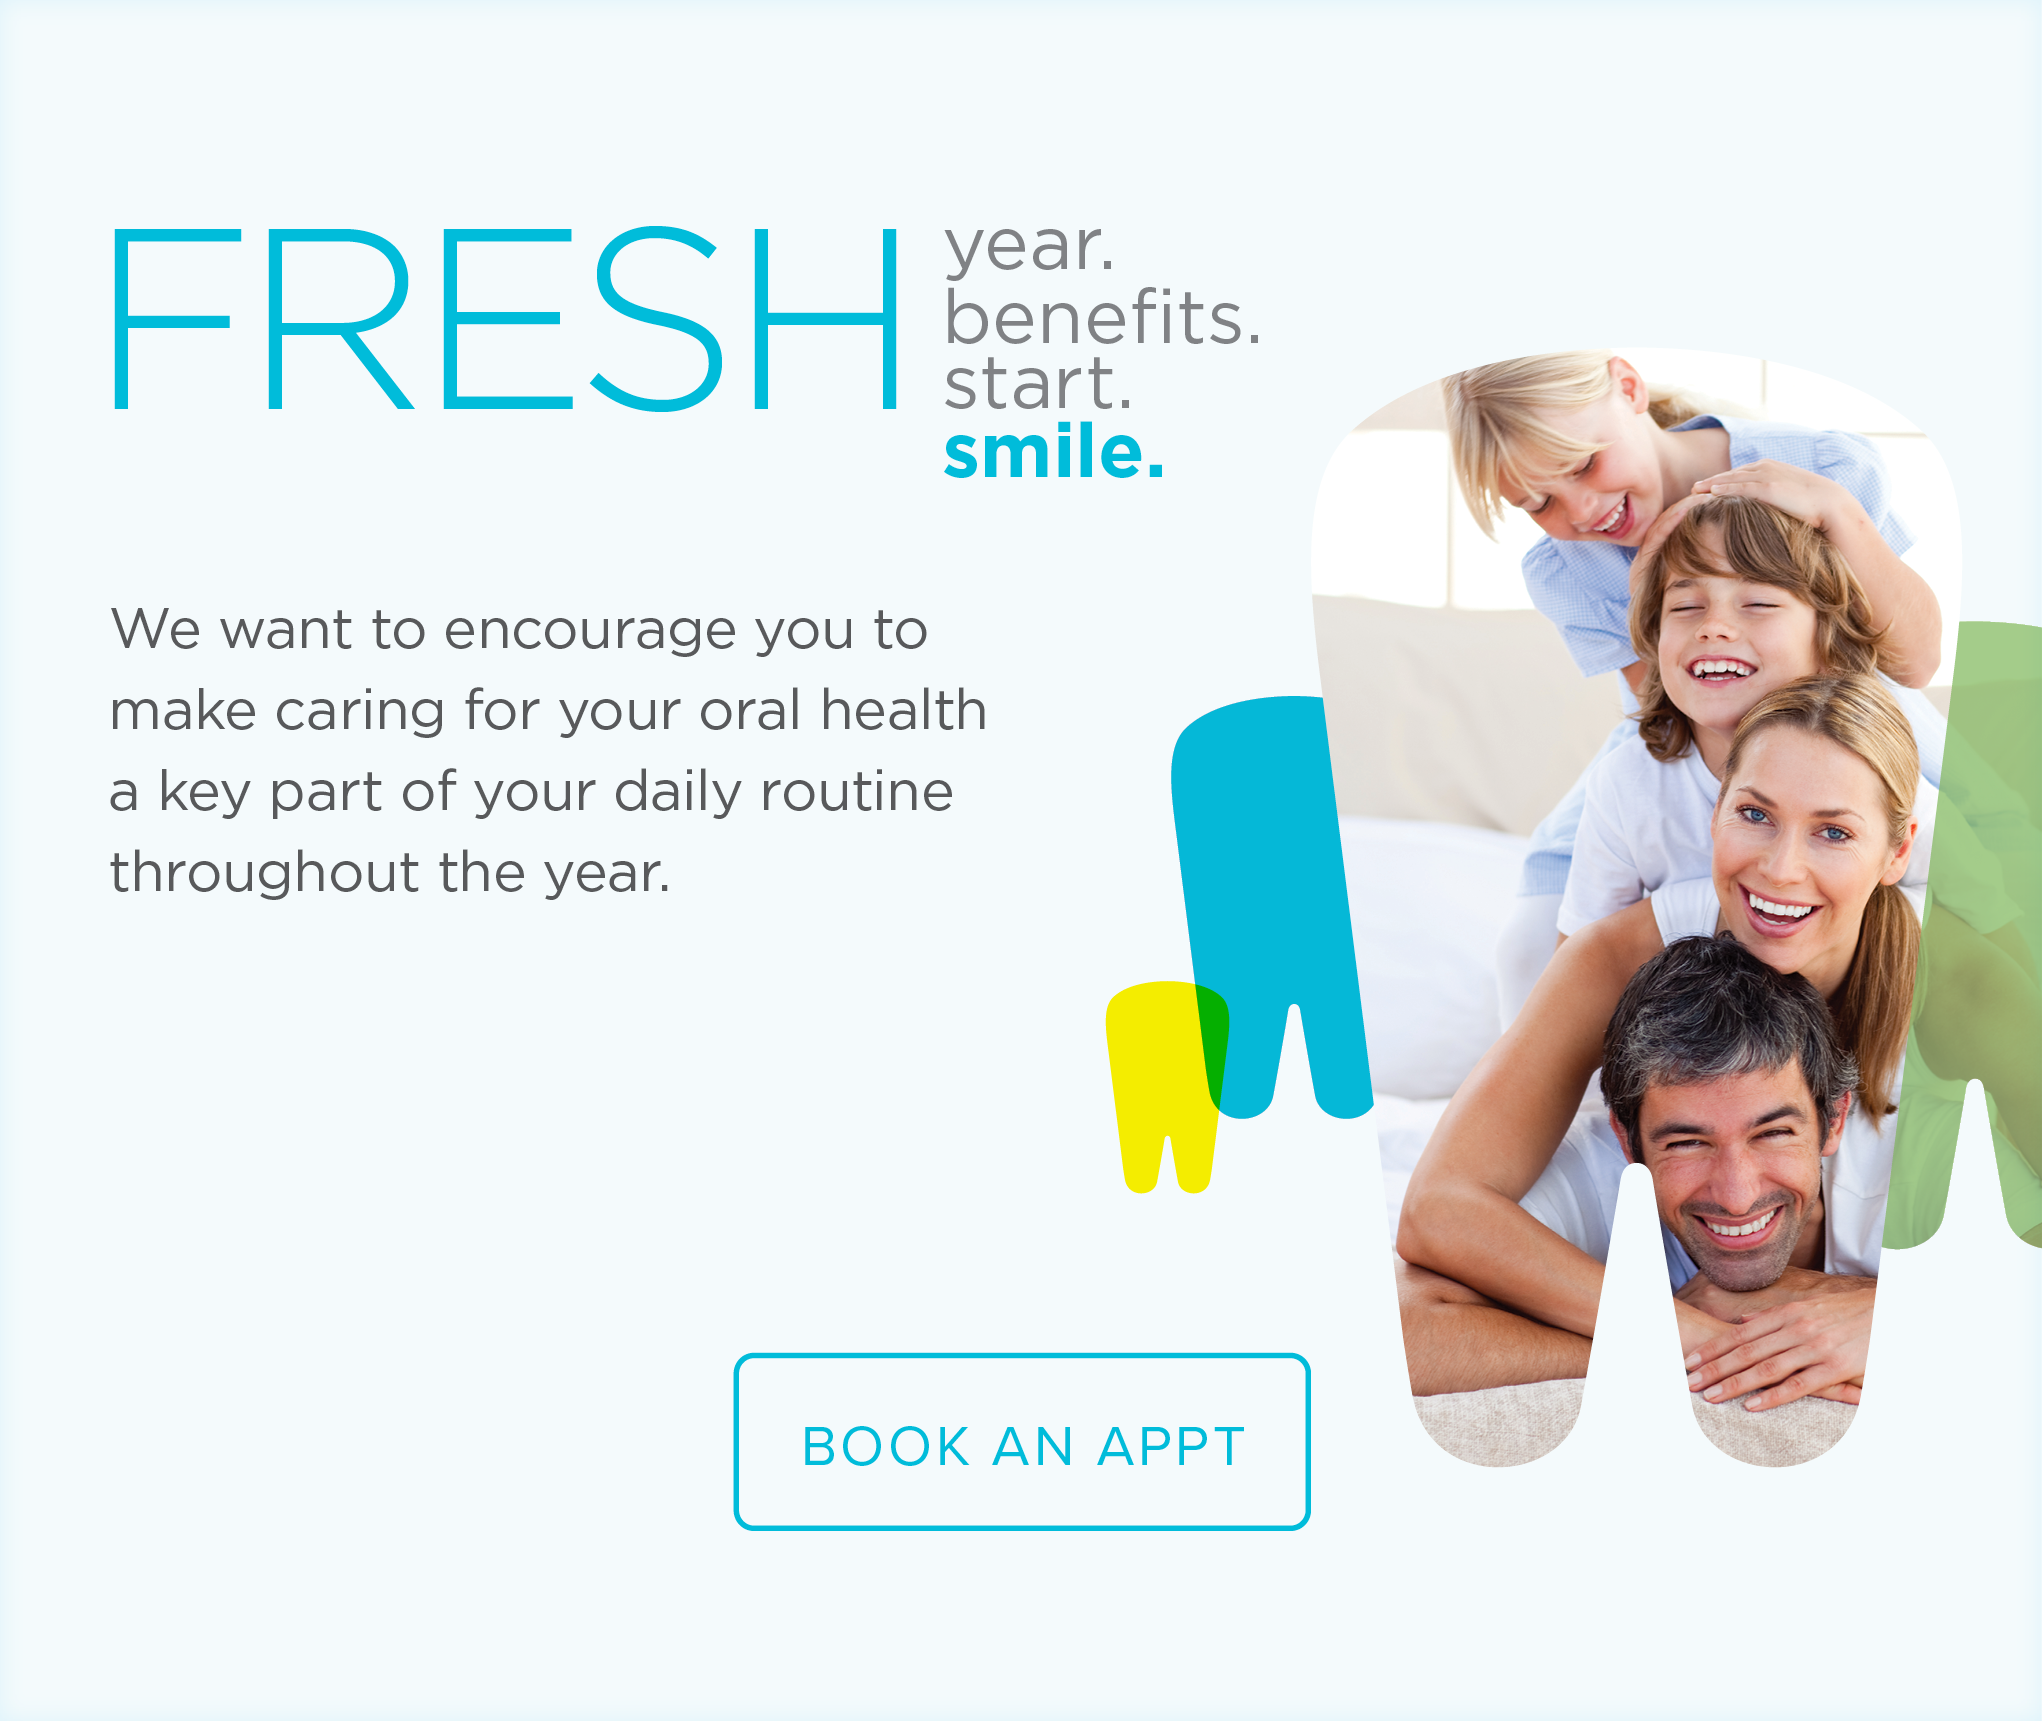 Murrieta Dental Group and Orthodontics - Make the Most of Your Benefits